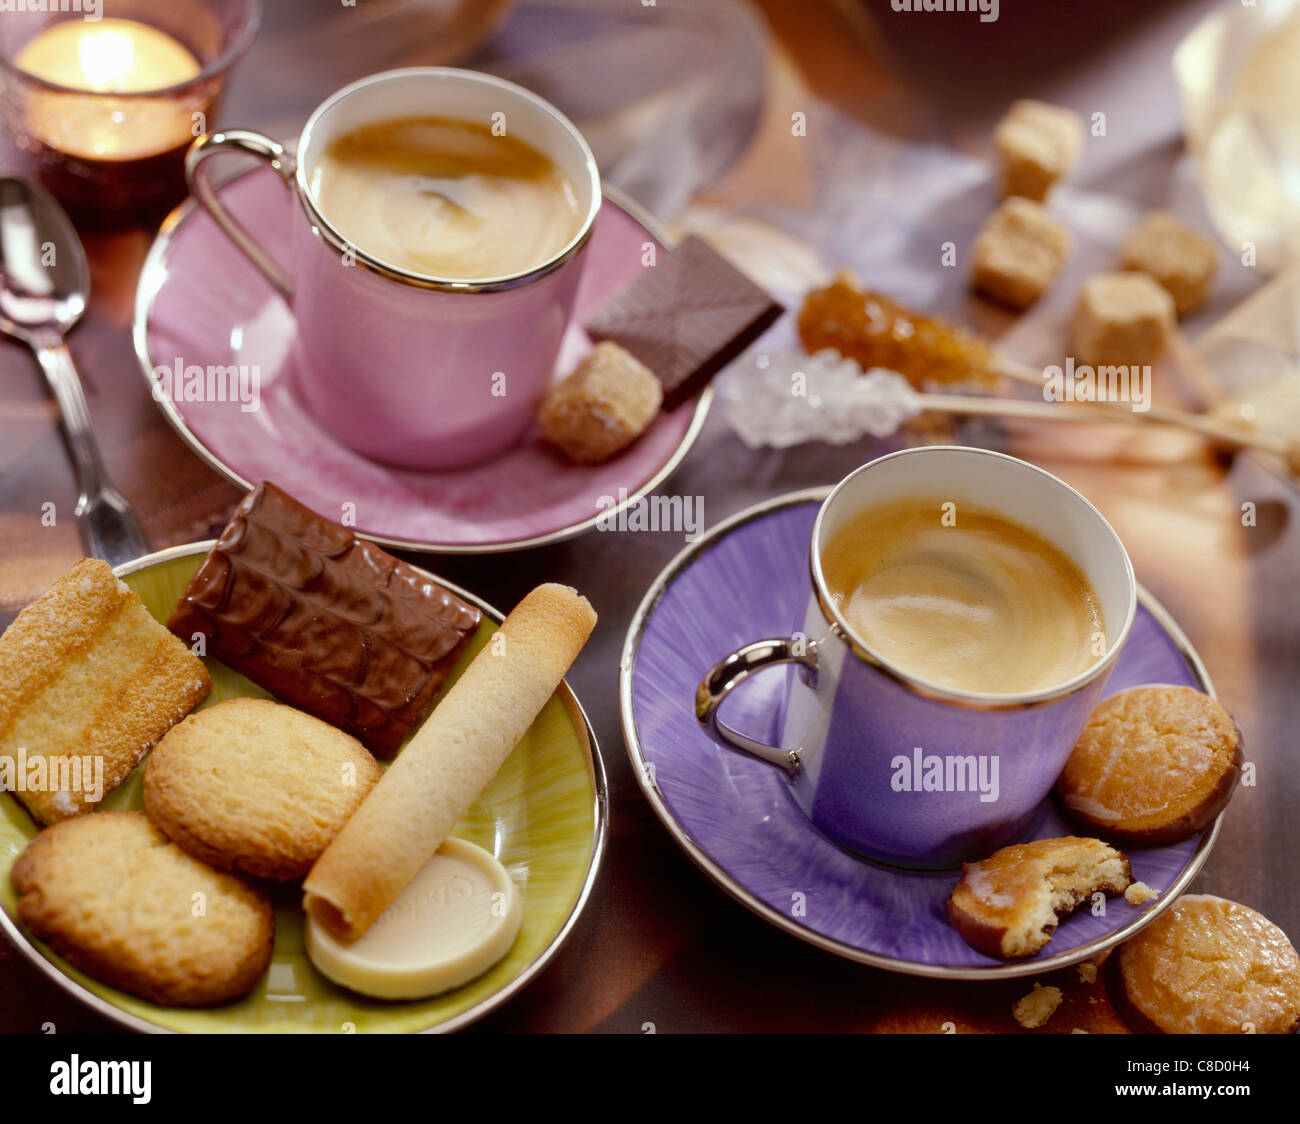 caf-atmosphere-with-cups-of-coffee-and-petit-four-biscuits-c8d0h4.jpg